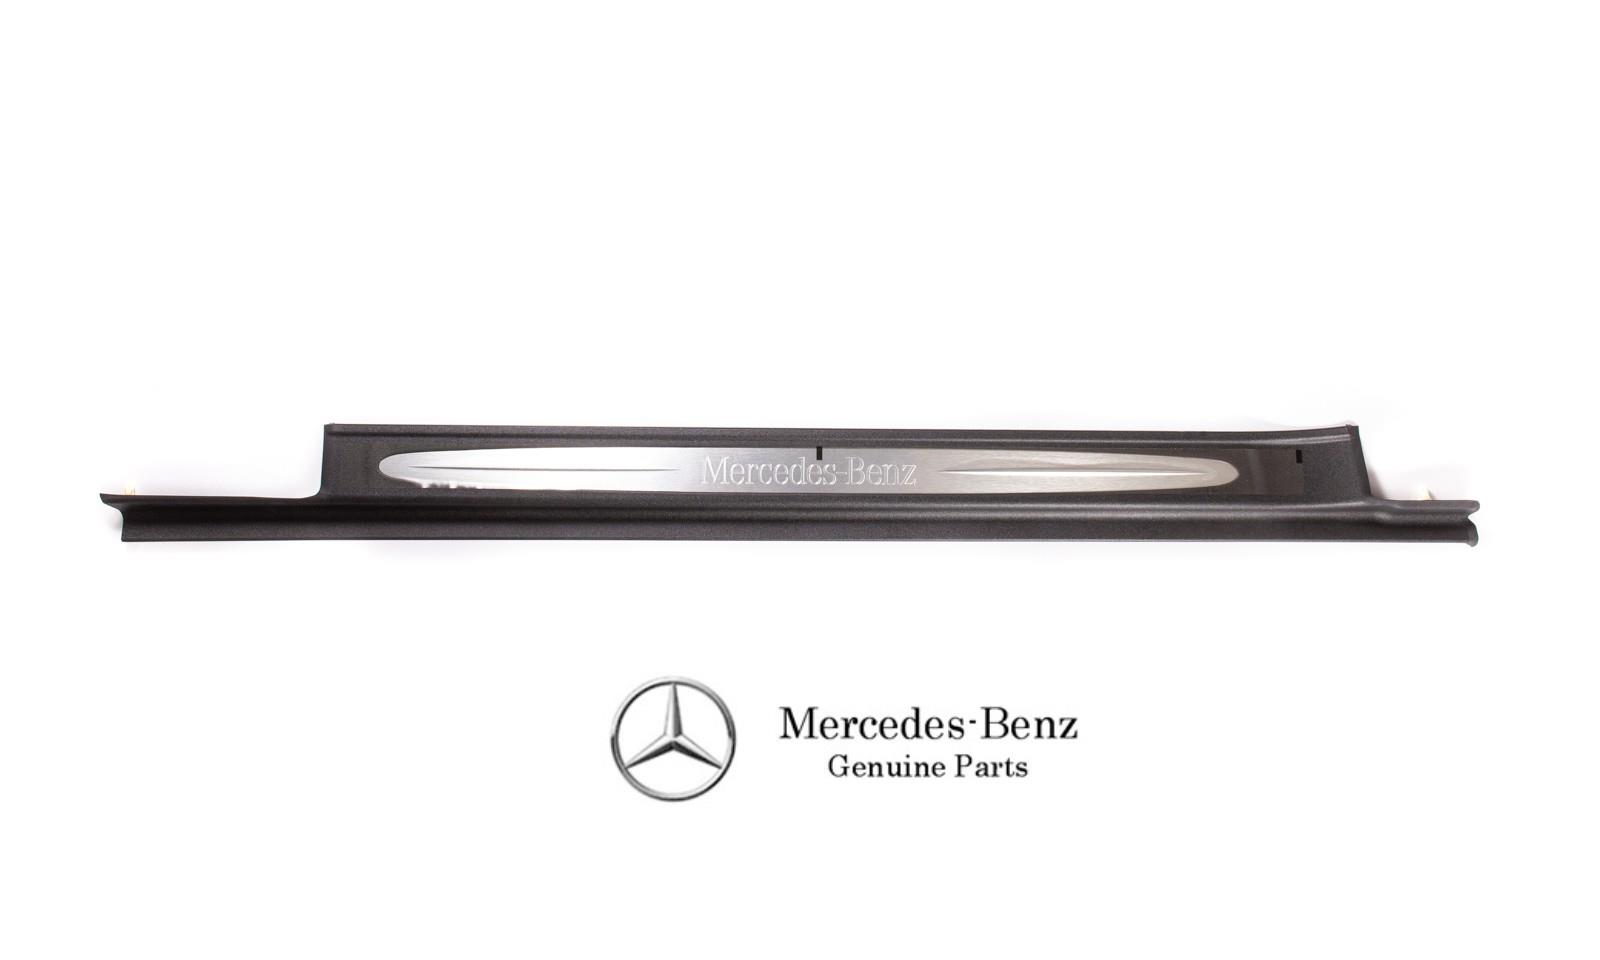 New Left Outside Door Sill Cover 2003-09 Mercedes CLK 320